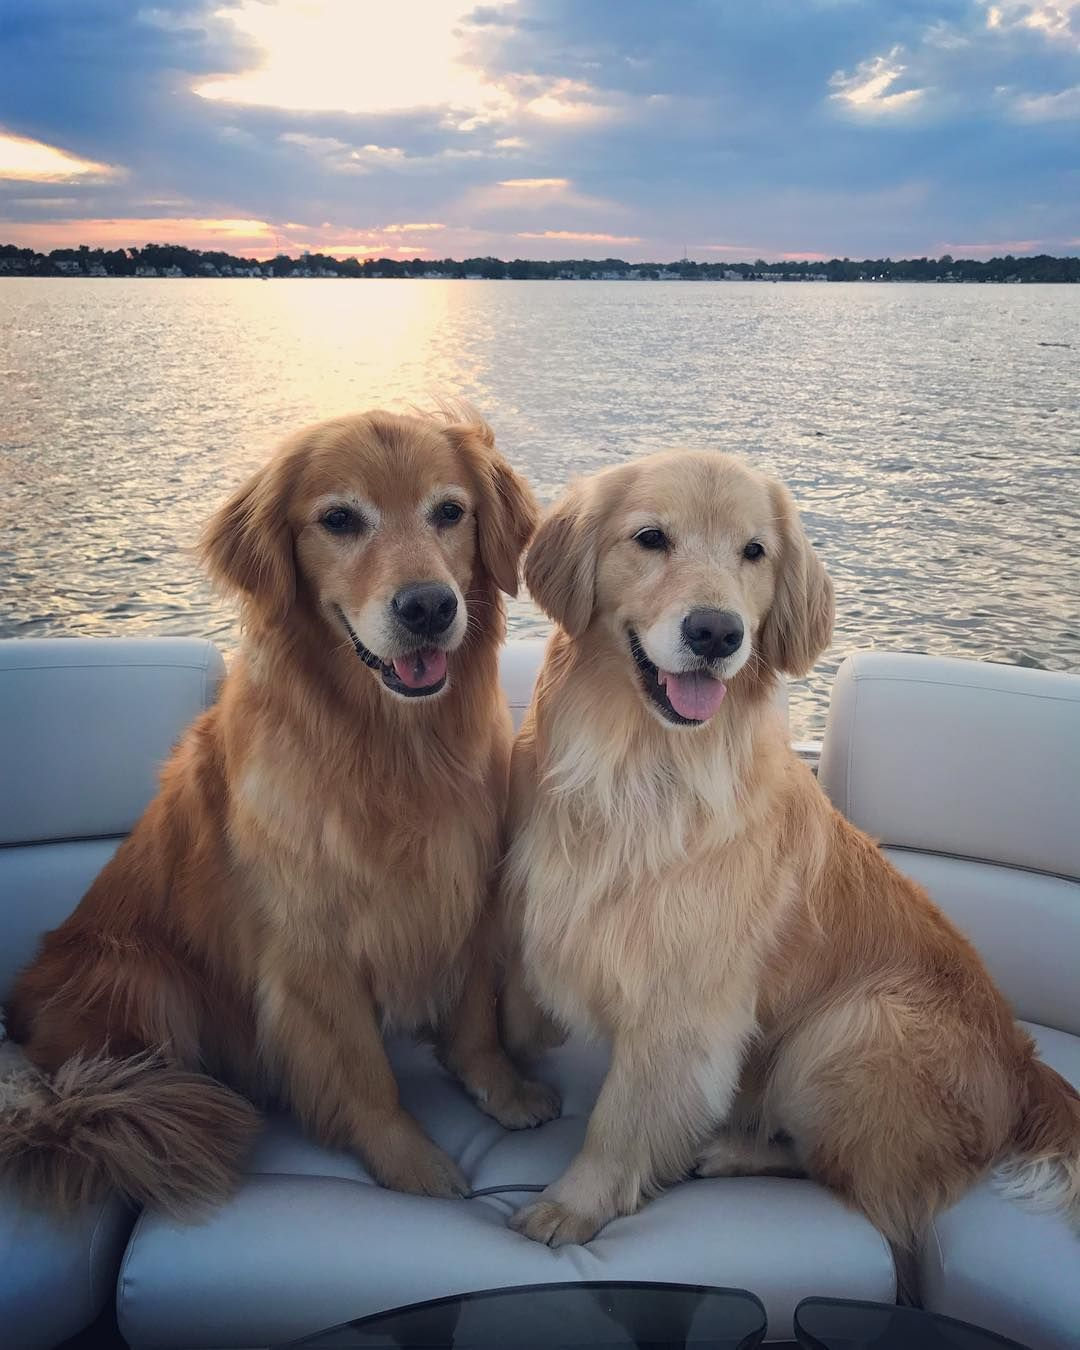 5 684 Likes 145 Comments Goldens Teddy Harper Sophie